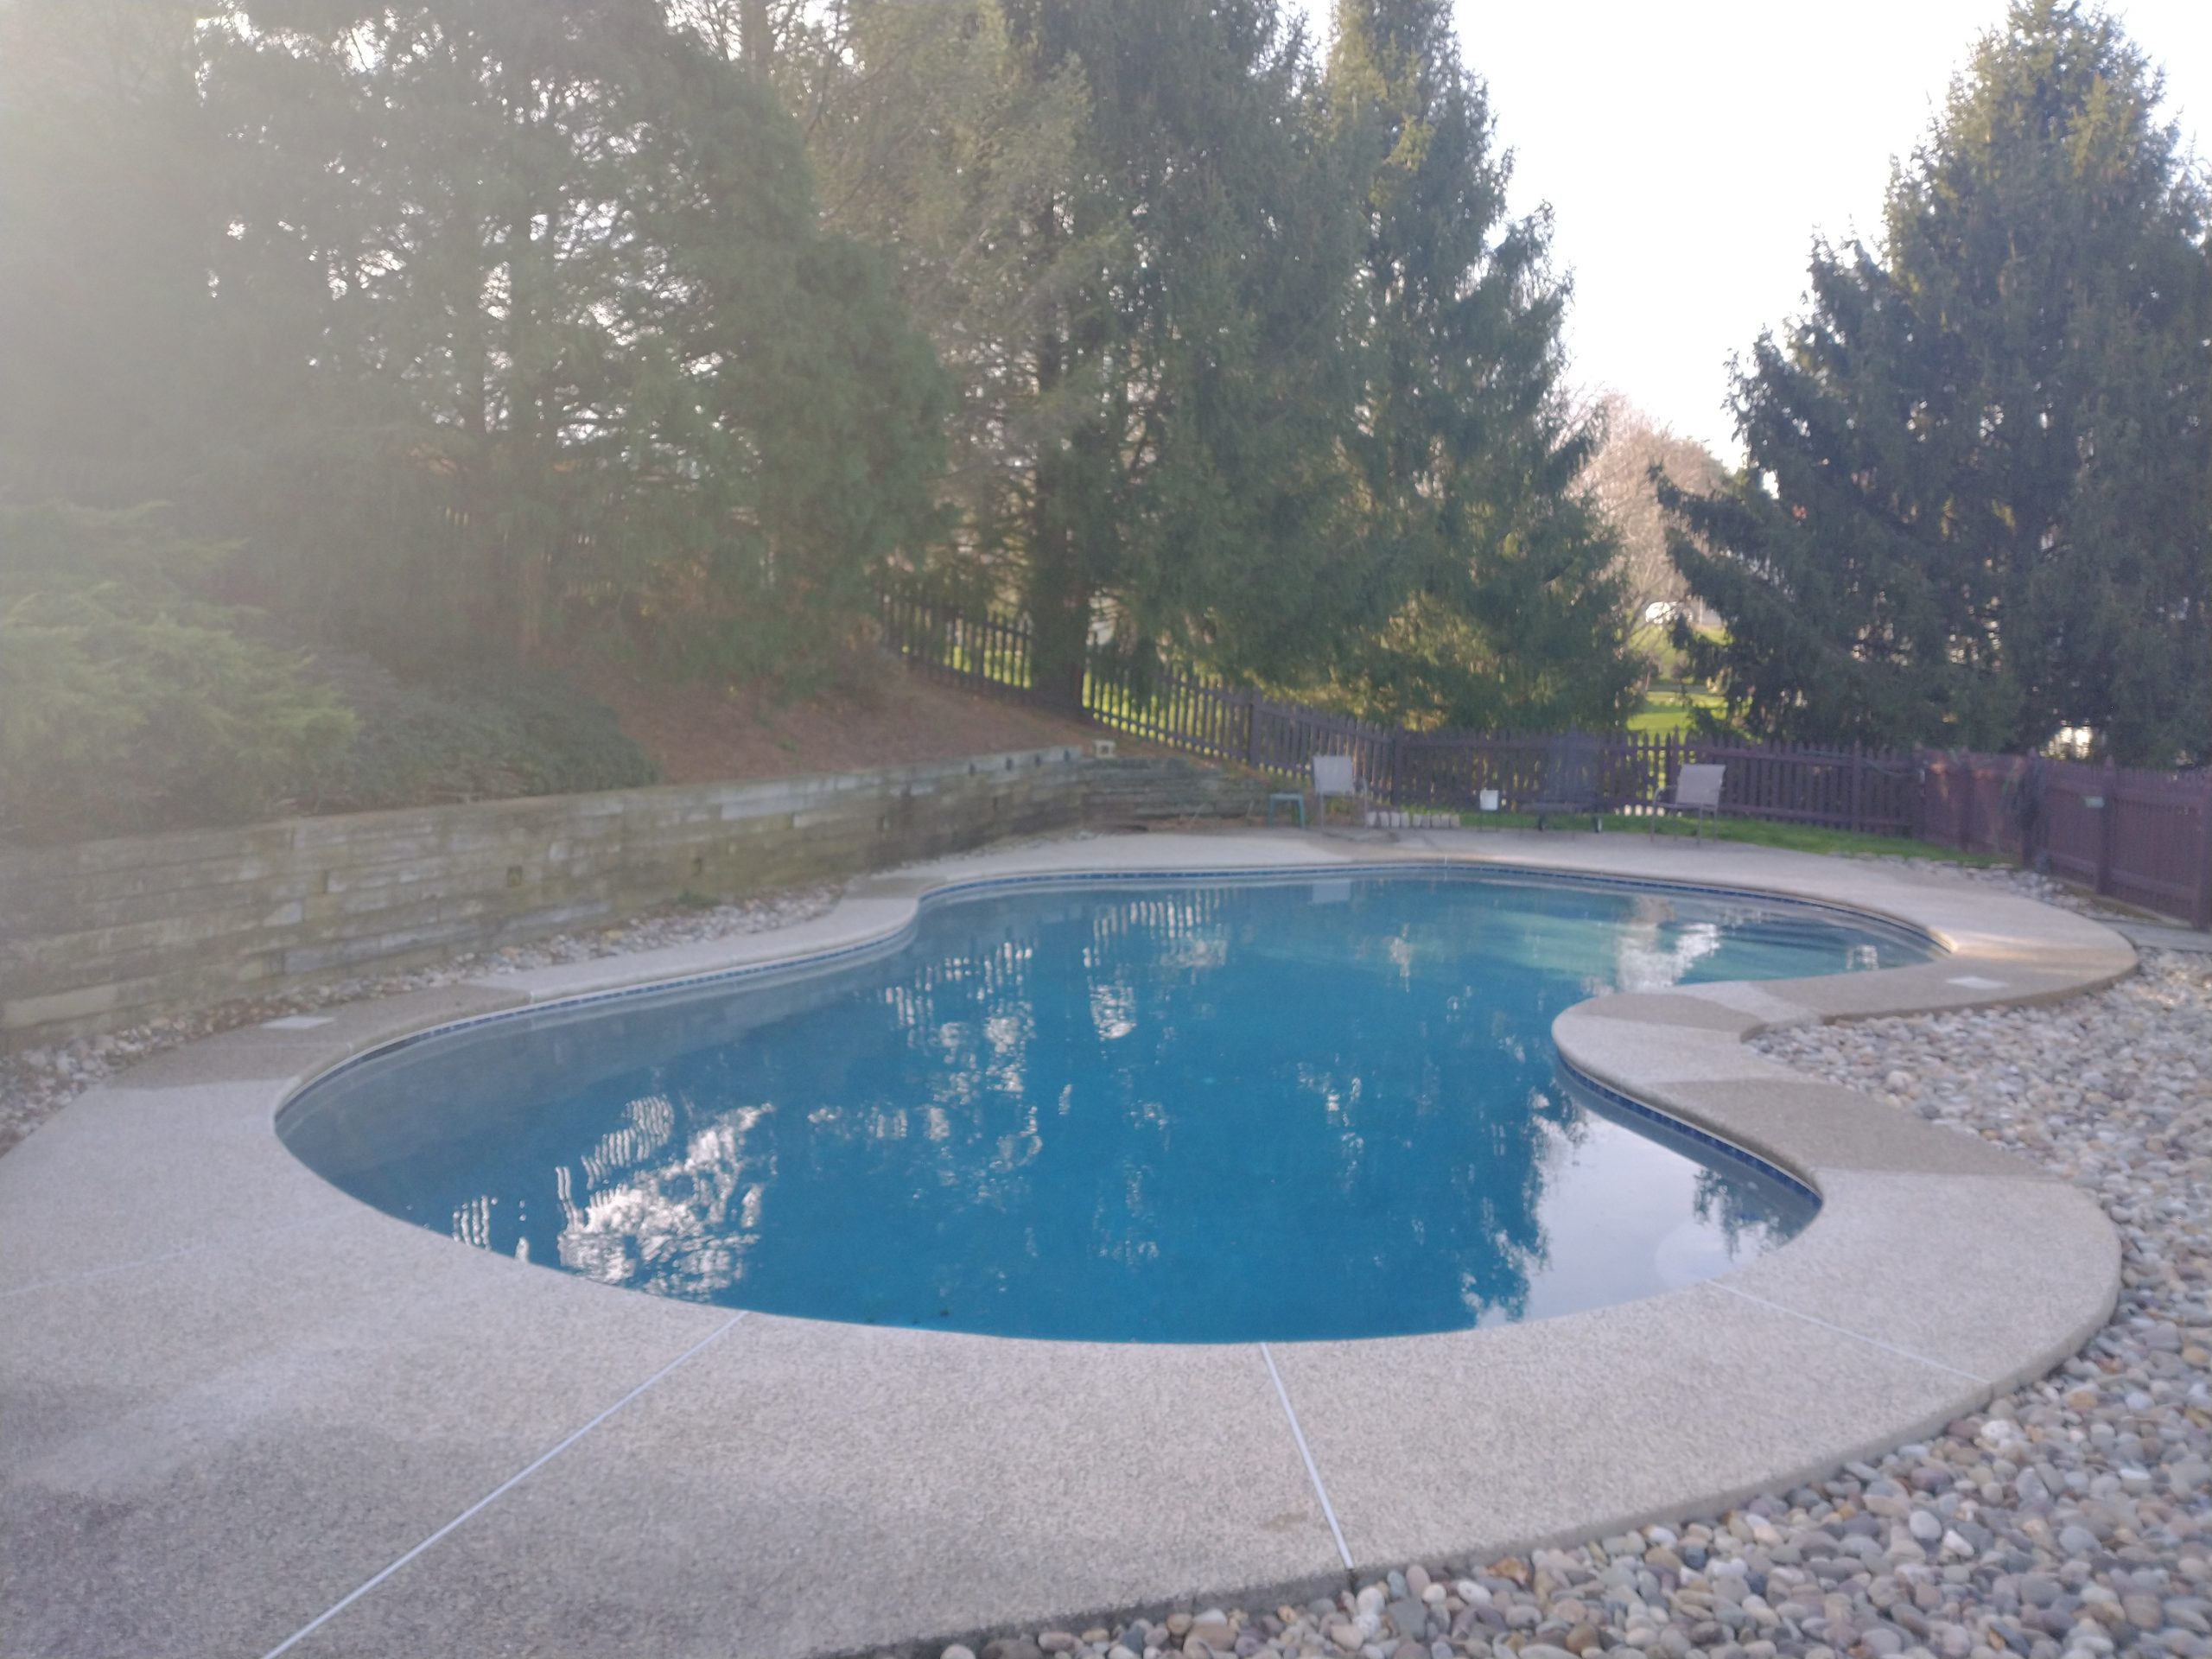 Home Pool Opening Services in Concordville, PA